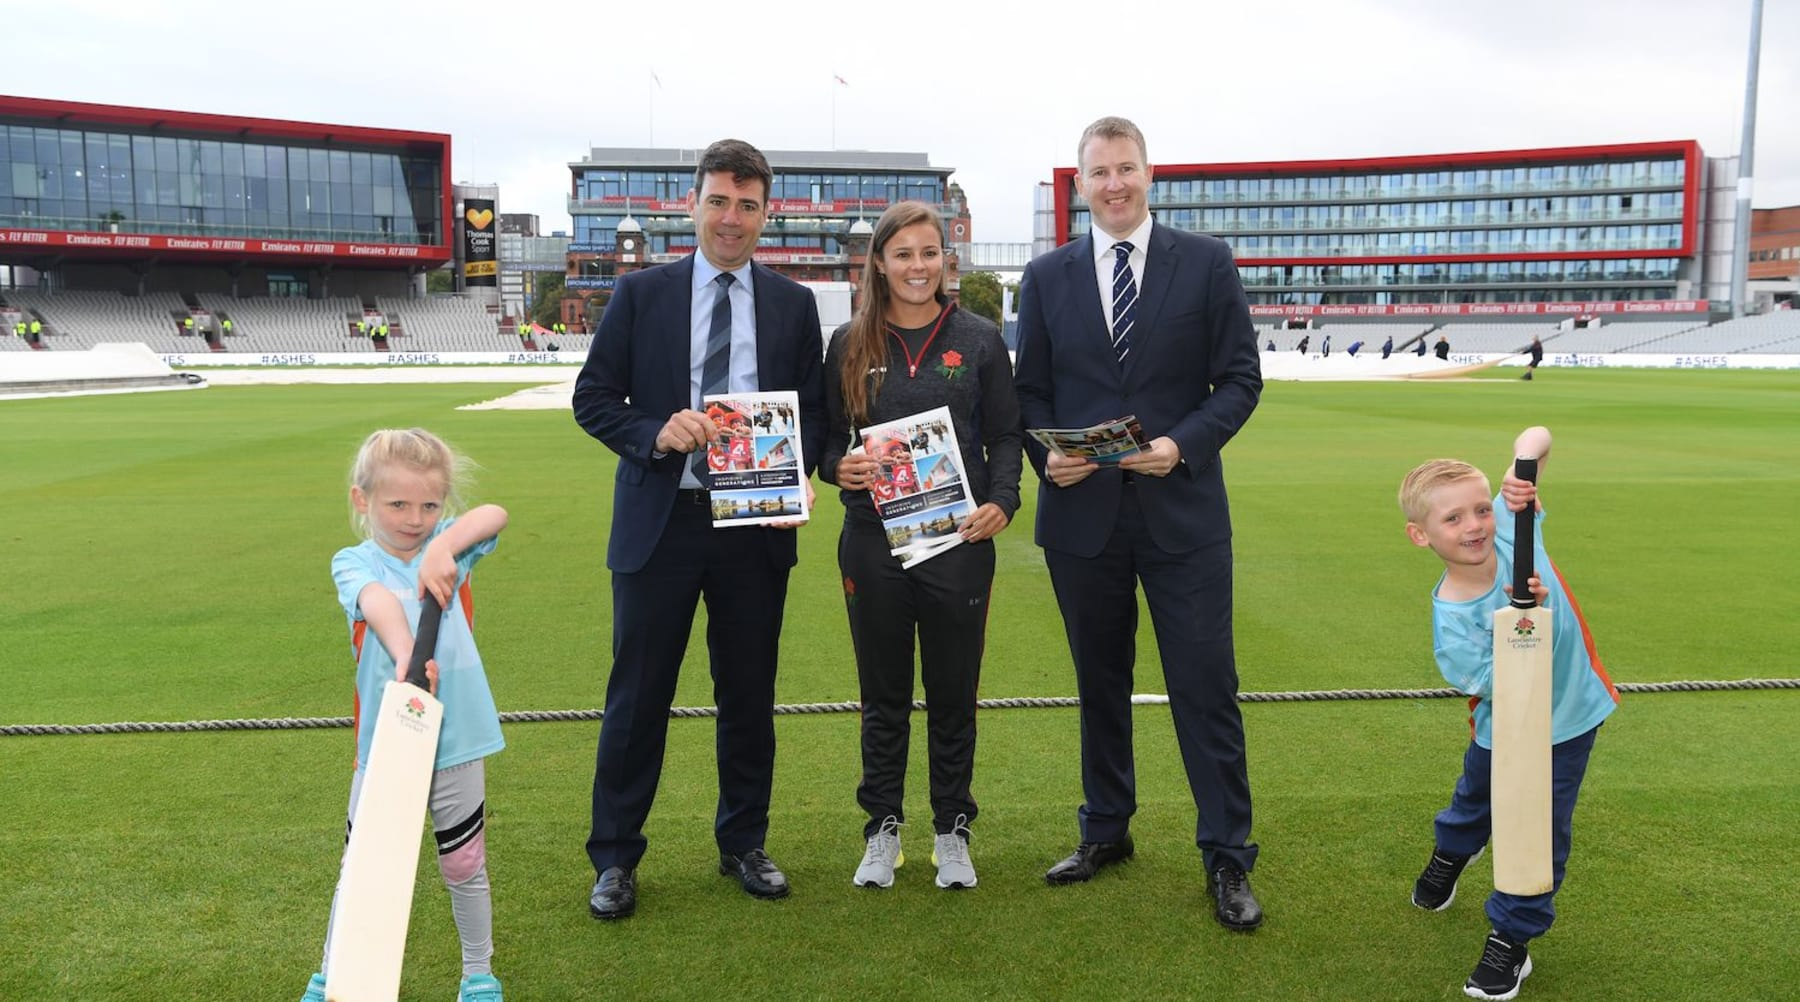 Ground-breaking new partnership set to inspire a new generation of Greater Manchester cricket lovers